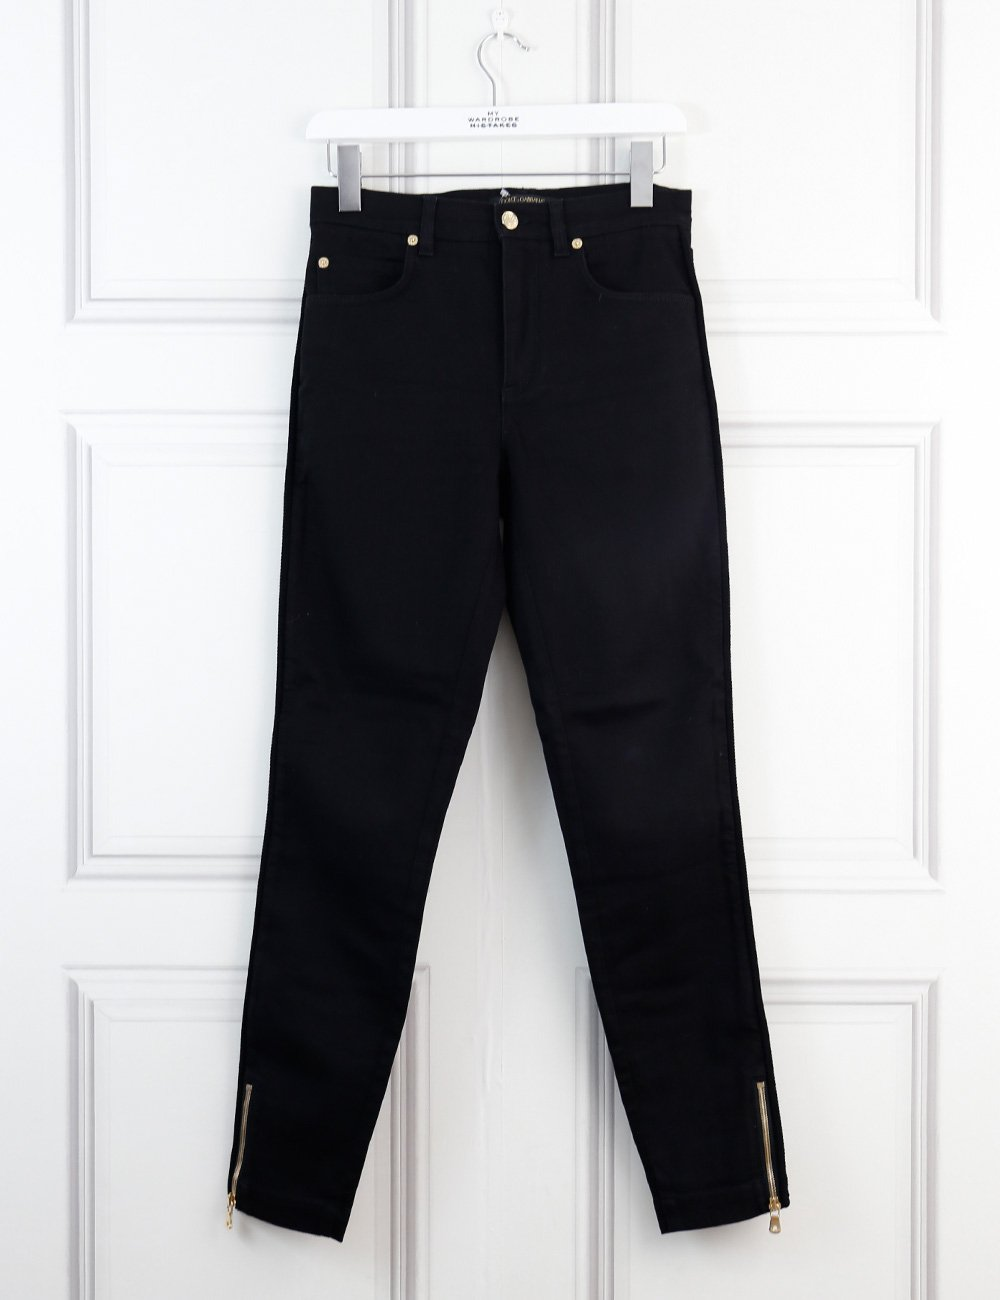 Dolce&Gabbana black denim trousers with rope detail at the side 8Uk